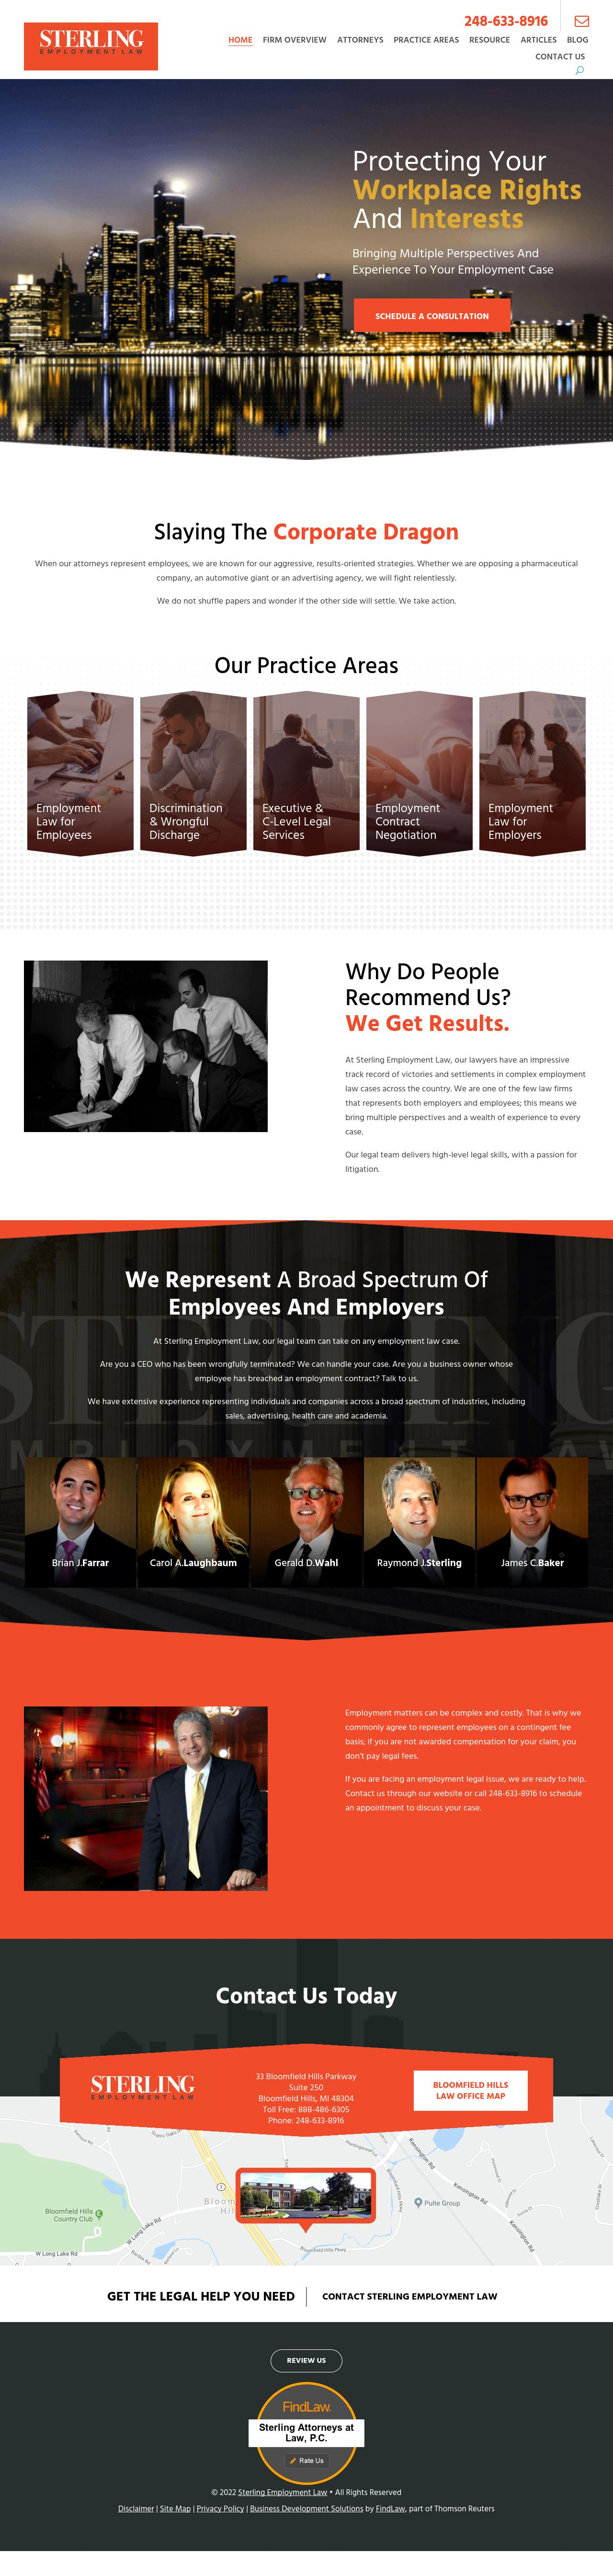 Sterling Attorneys at Law, P.C. - Bloomfield Hills MI Lawyers